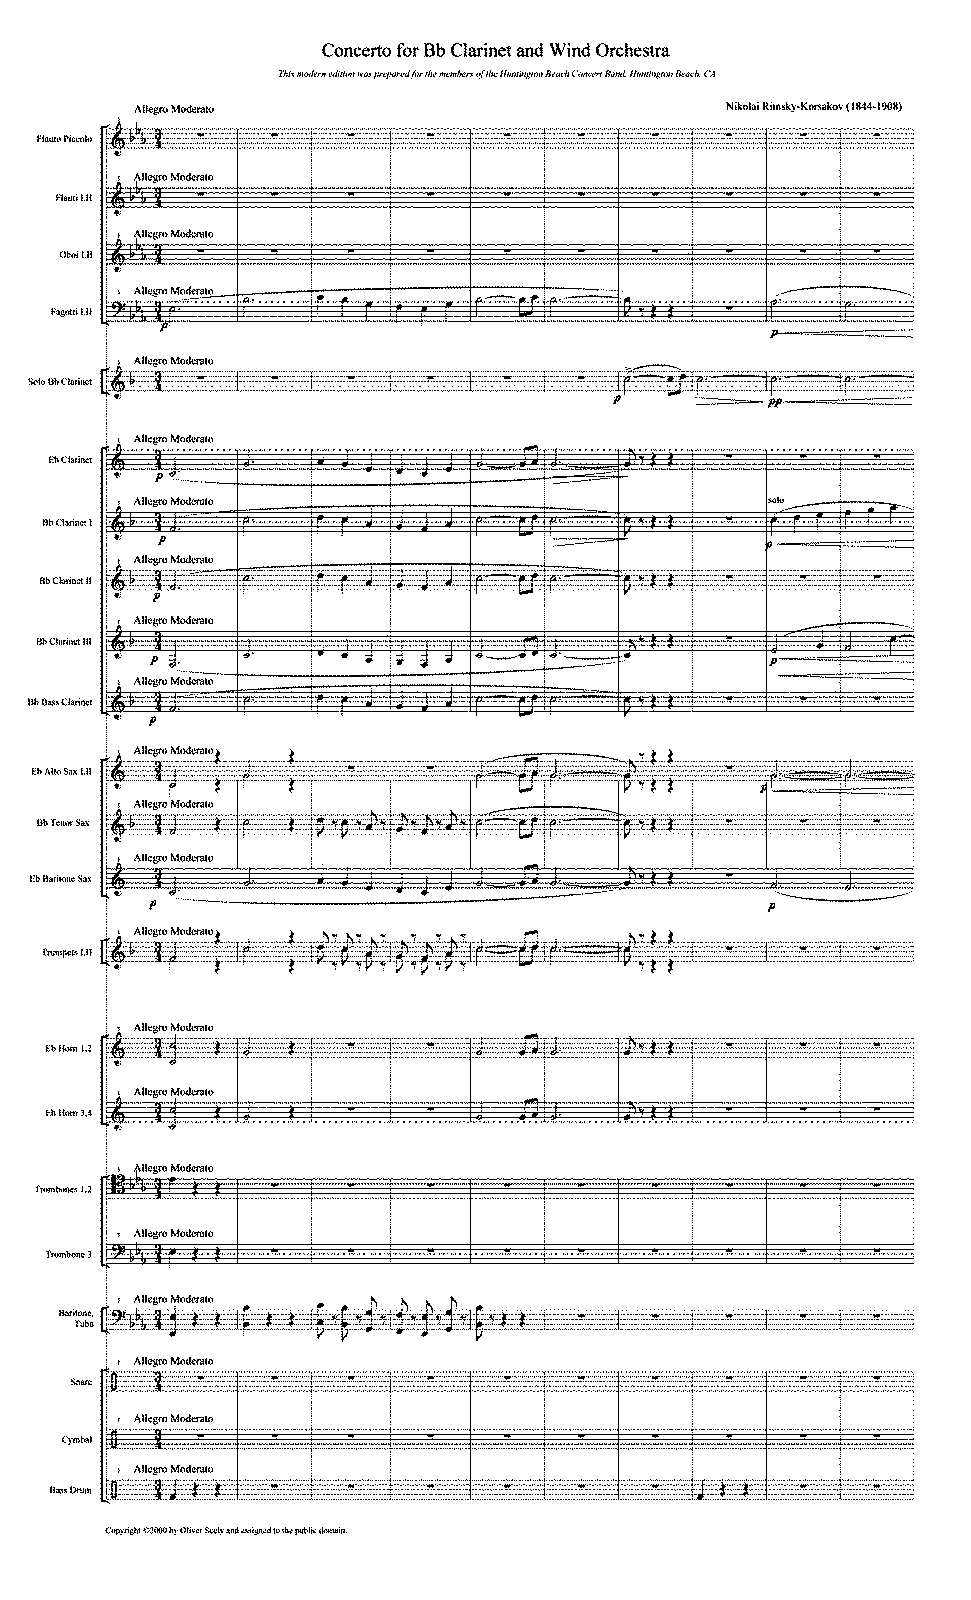 PMLP62570-Concert Band - Rimsky Korsakov - Concerto for Bb Clarinet and band full score.pdf